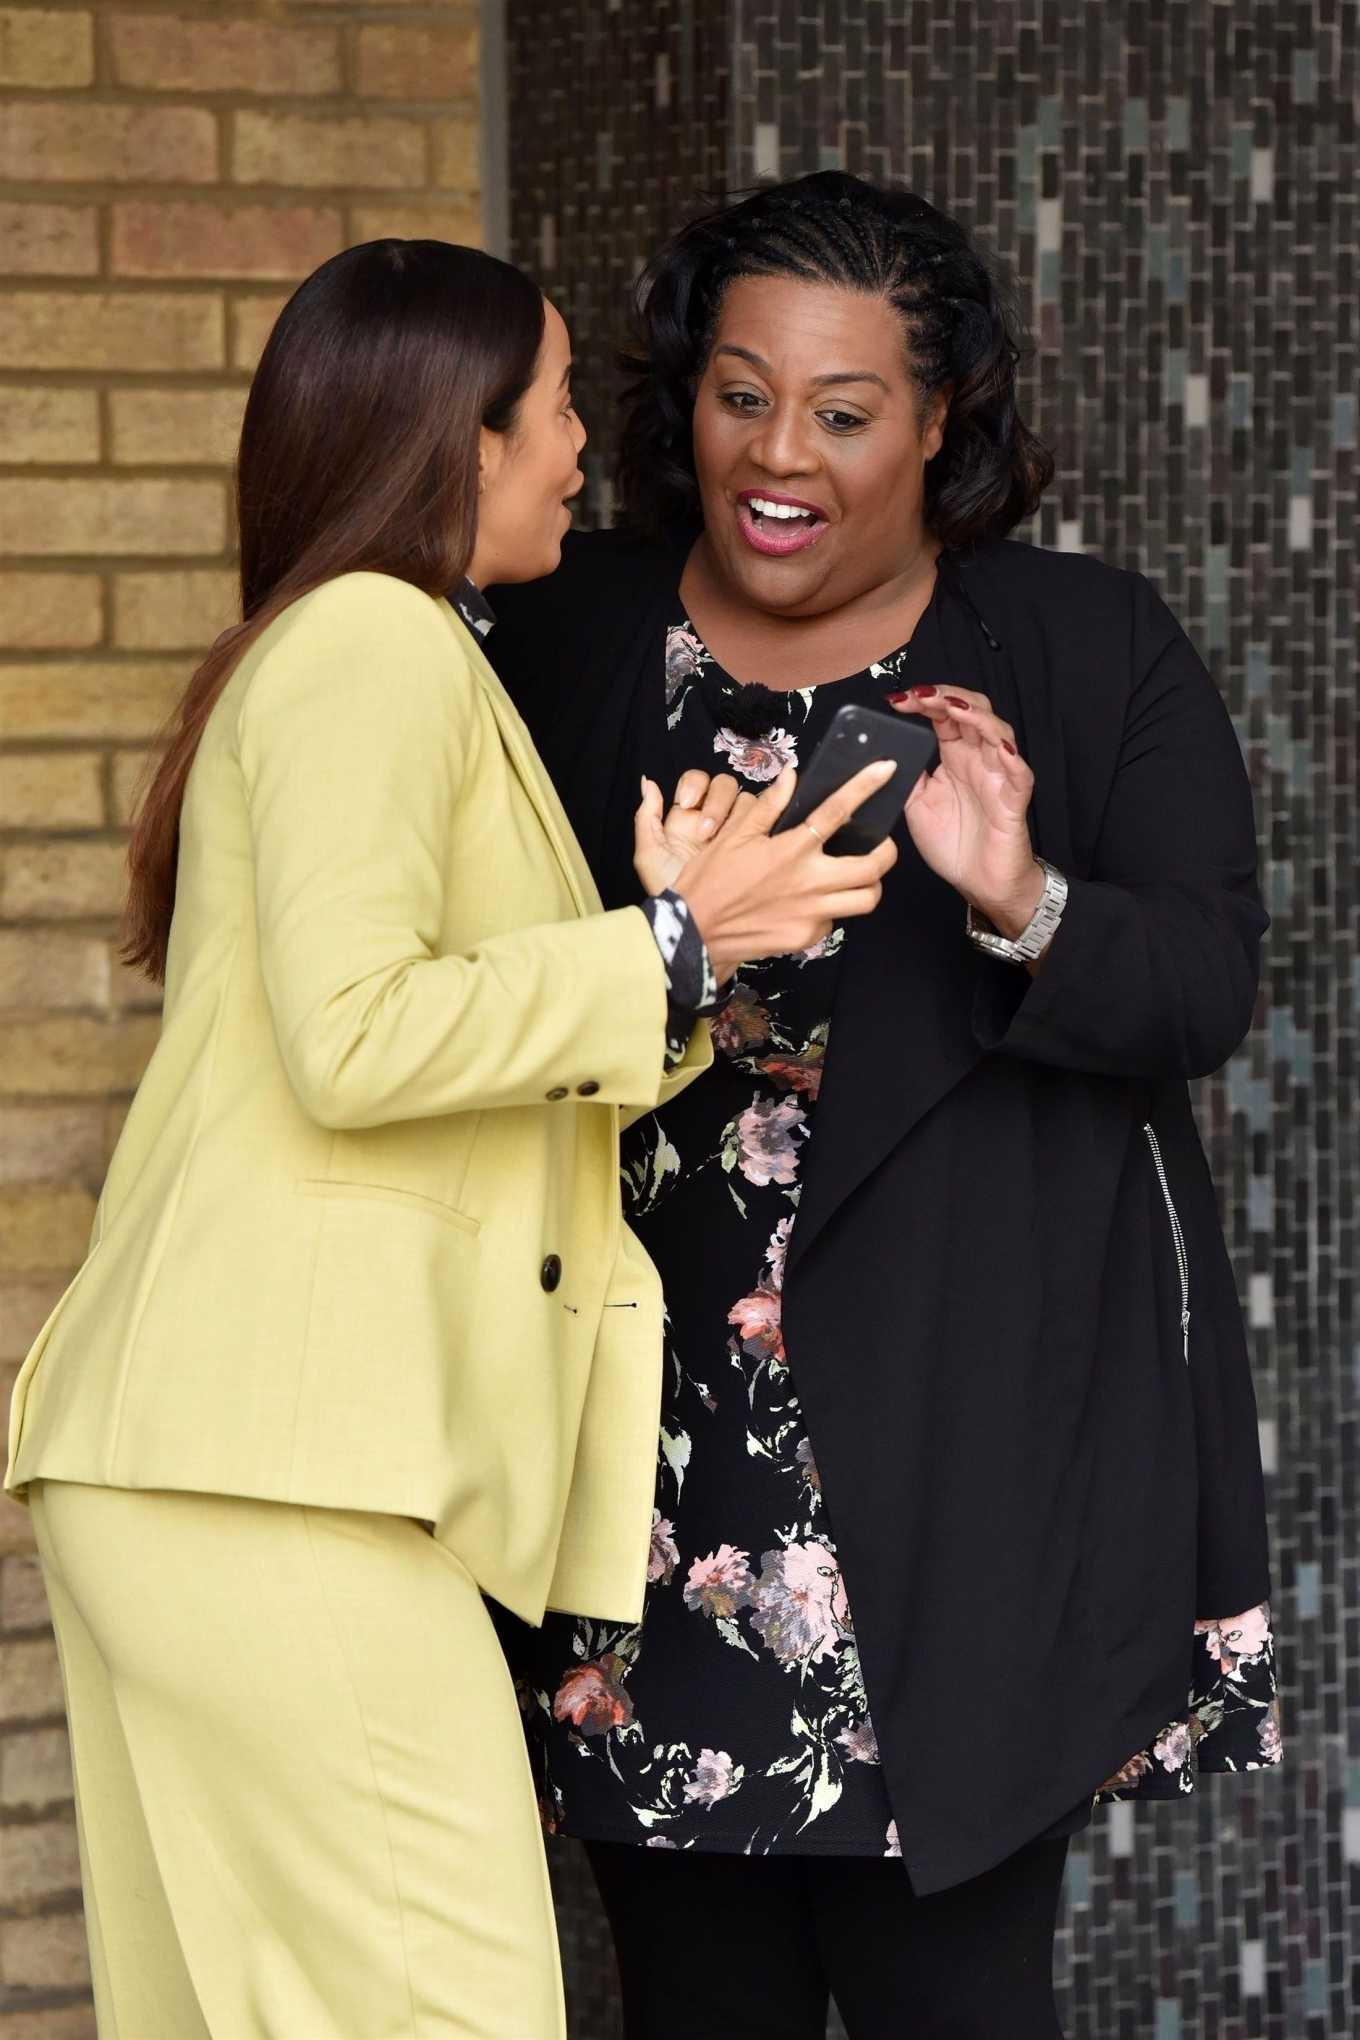 Rochelle Humes and Alison Hammond at the ITV Studios in London